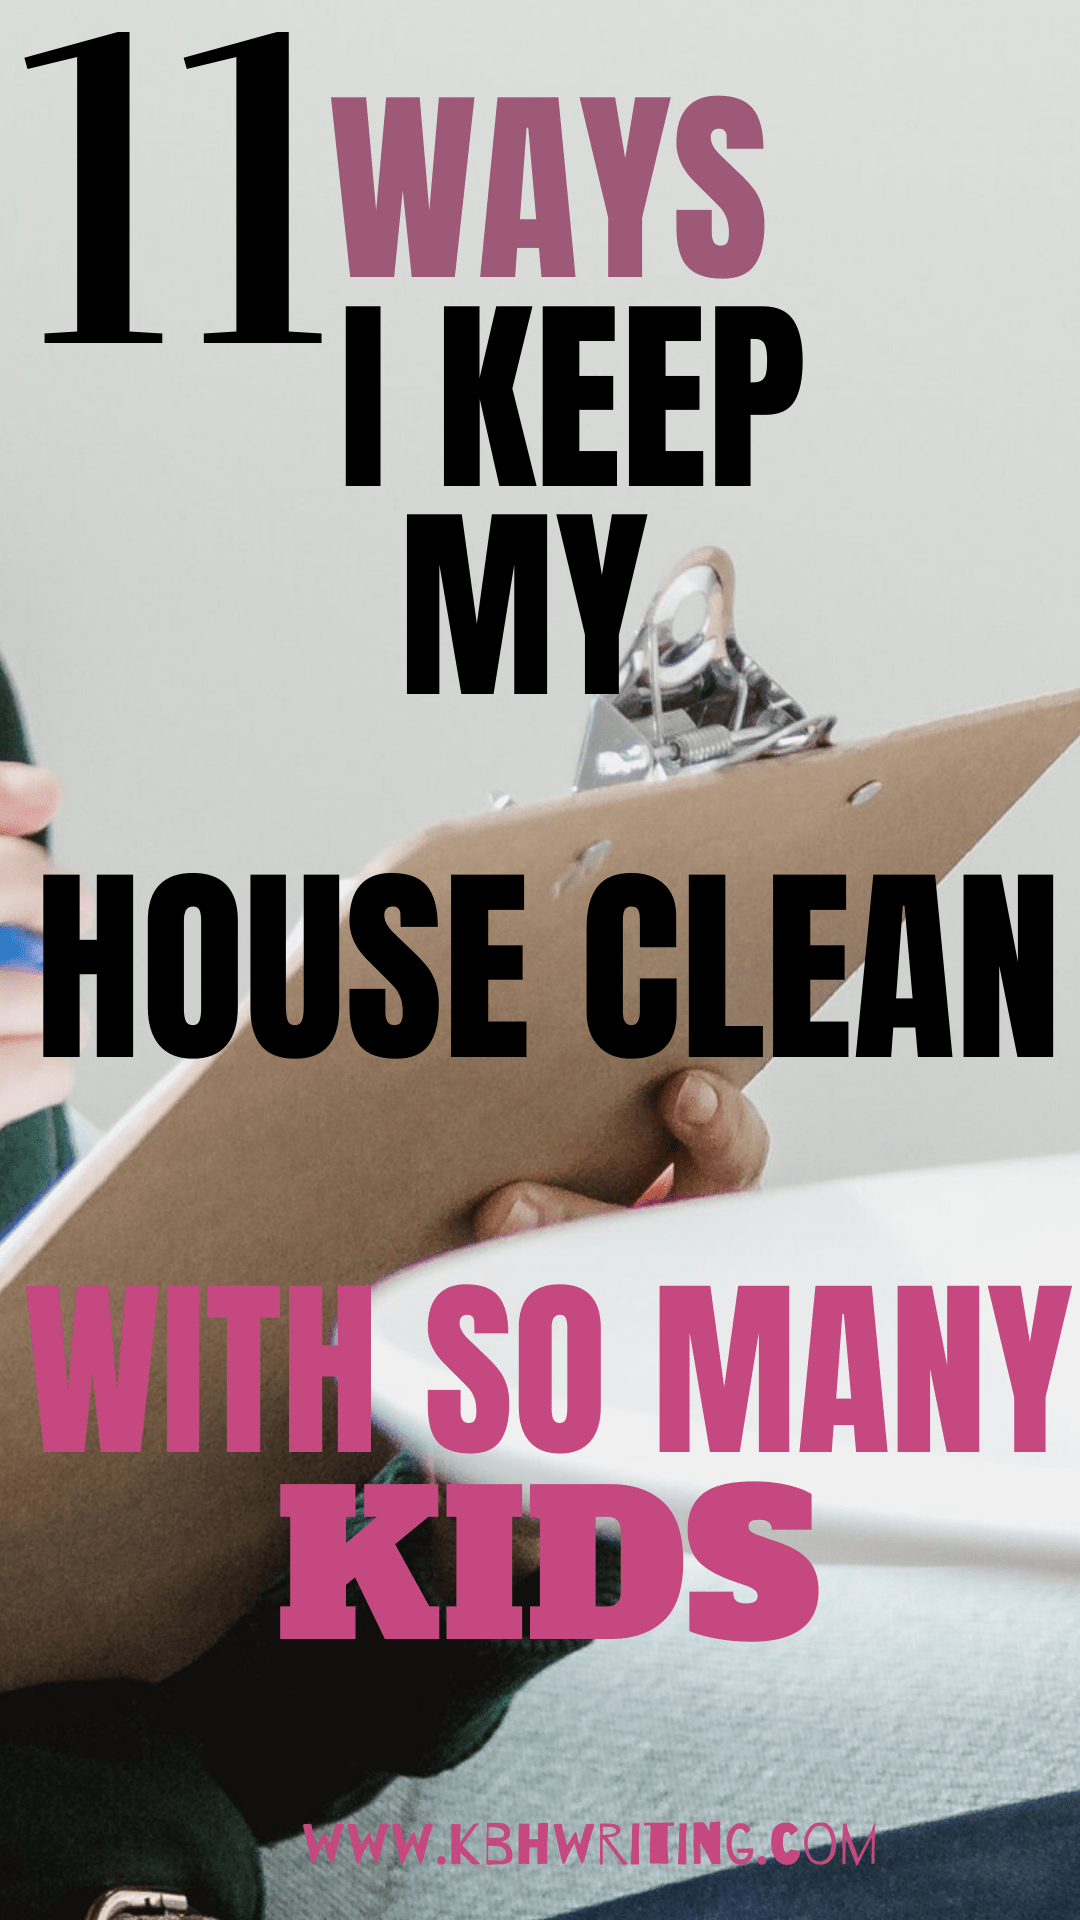 Habits of Women Who always Have Clean Homes Even With Lots Of Kids